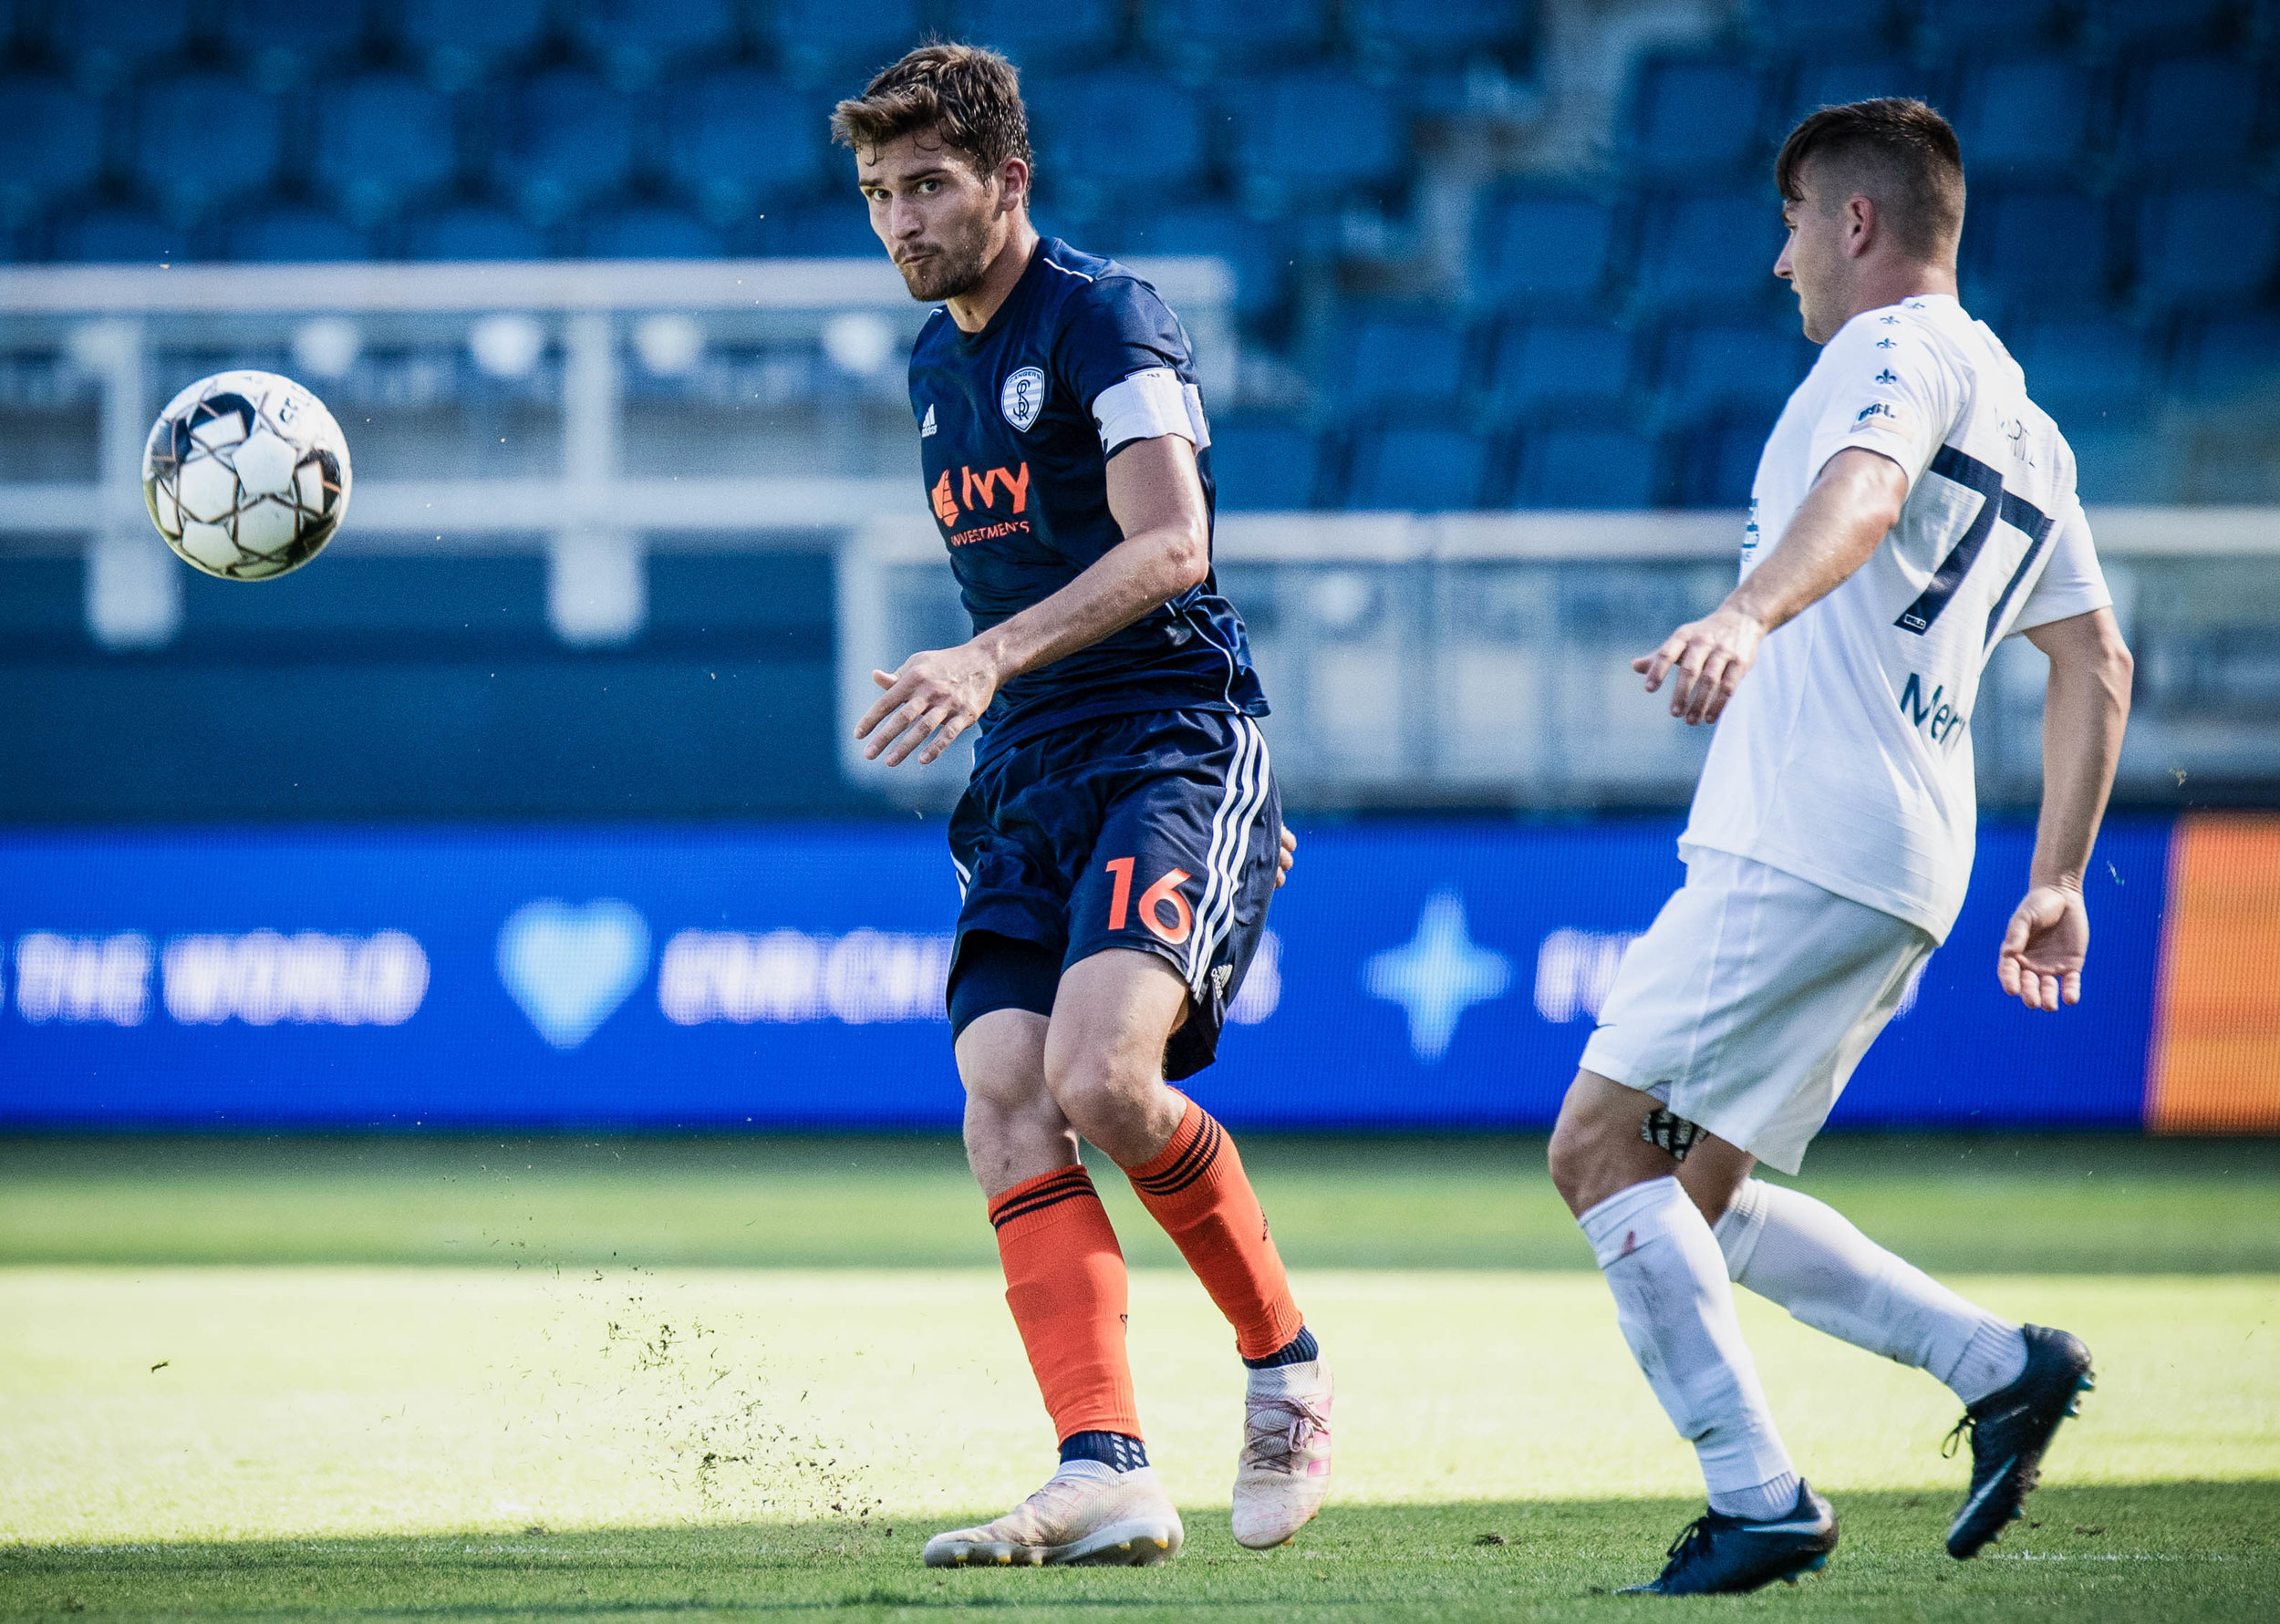 Graham Smith (16) plays a long ball during the Swope Park Rangers vs. Saint Louis FC match on Sunday, June 30, 2019 at Children's Mercy Park in Kansas City, Kansas. The Rangers took down Saint Louis 2-1 breaking their 8 game winless streak.